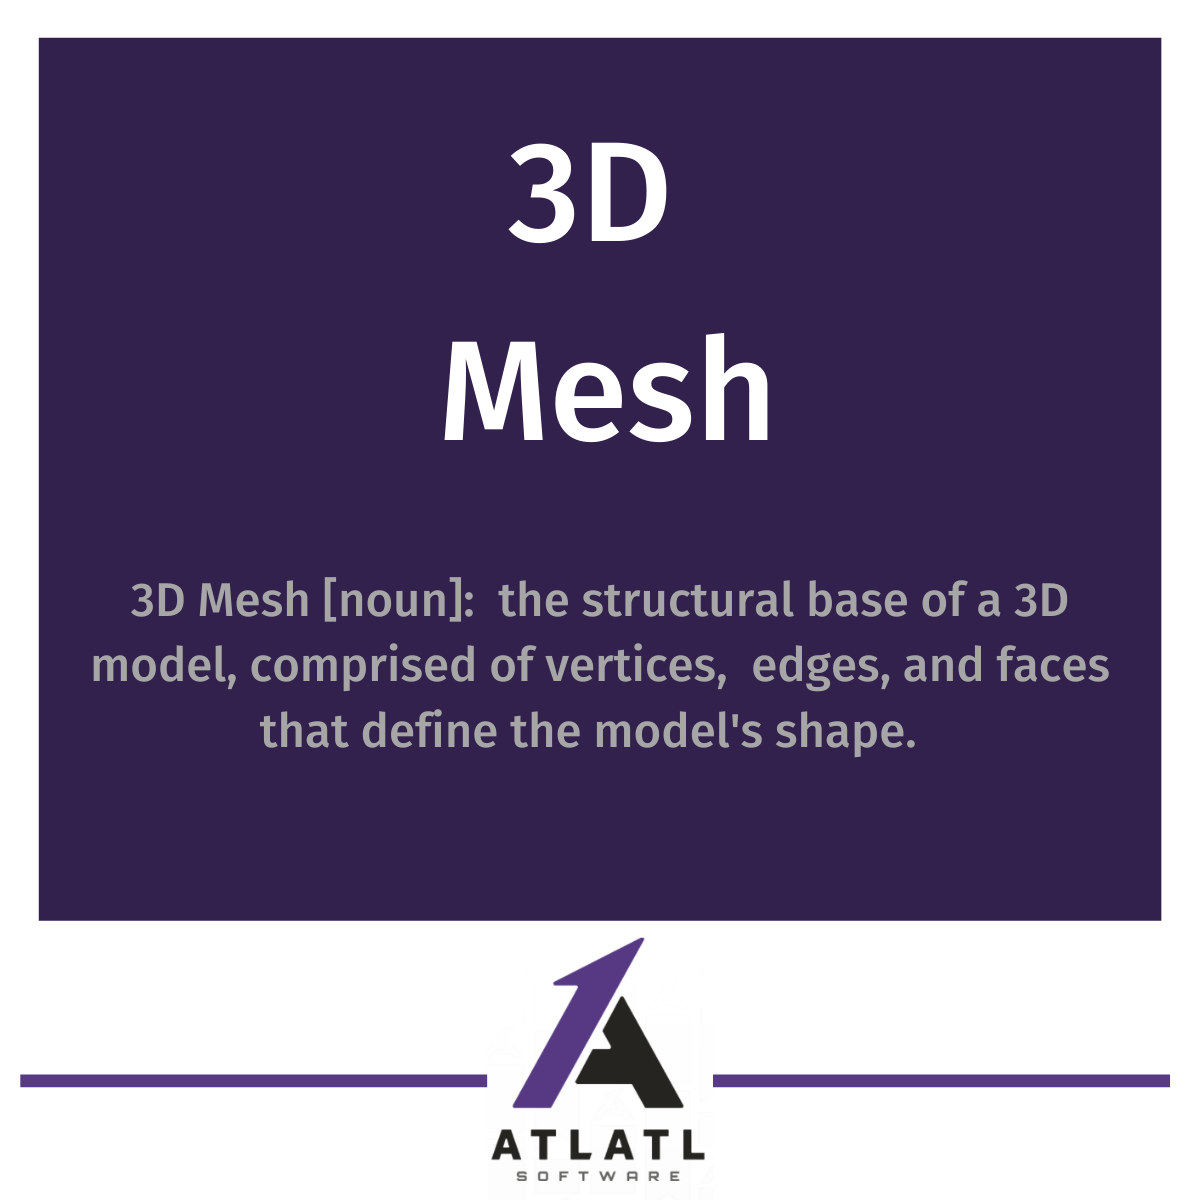 what is a 3D mesh?